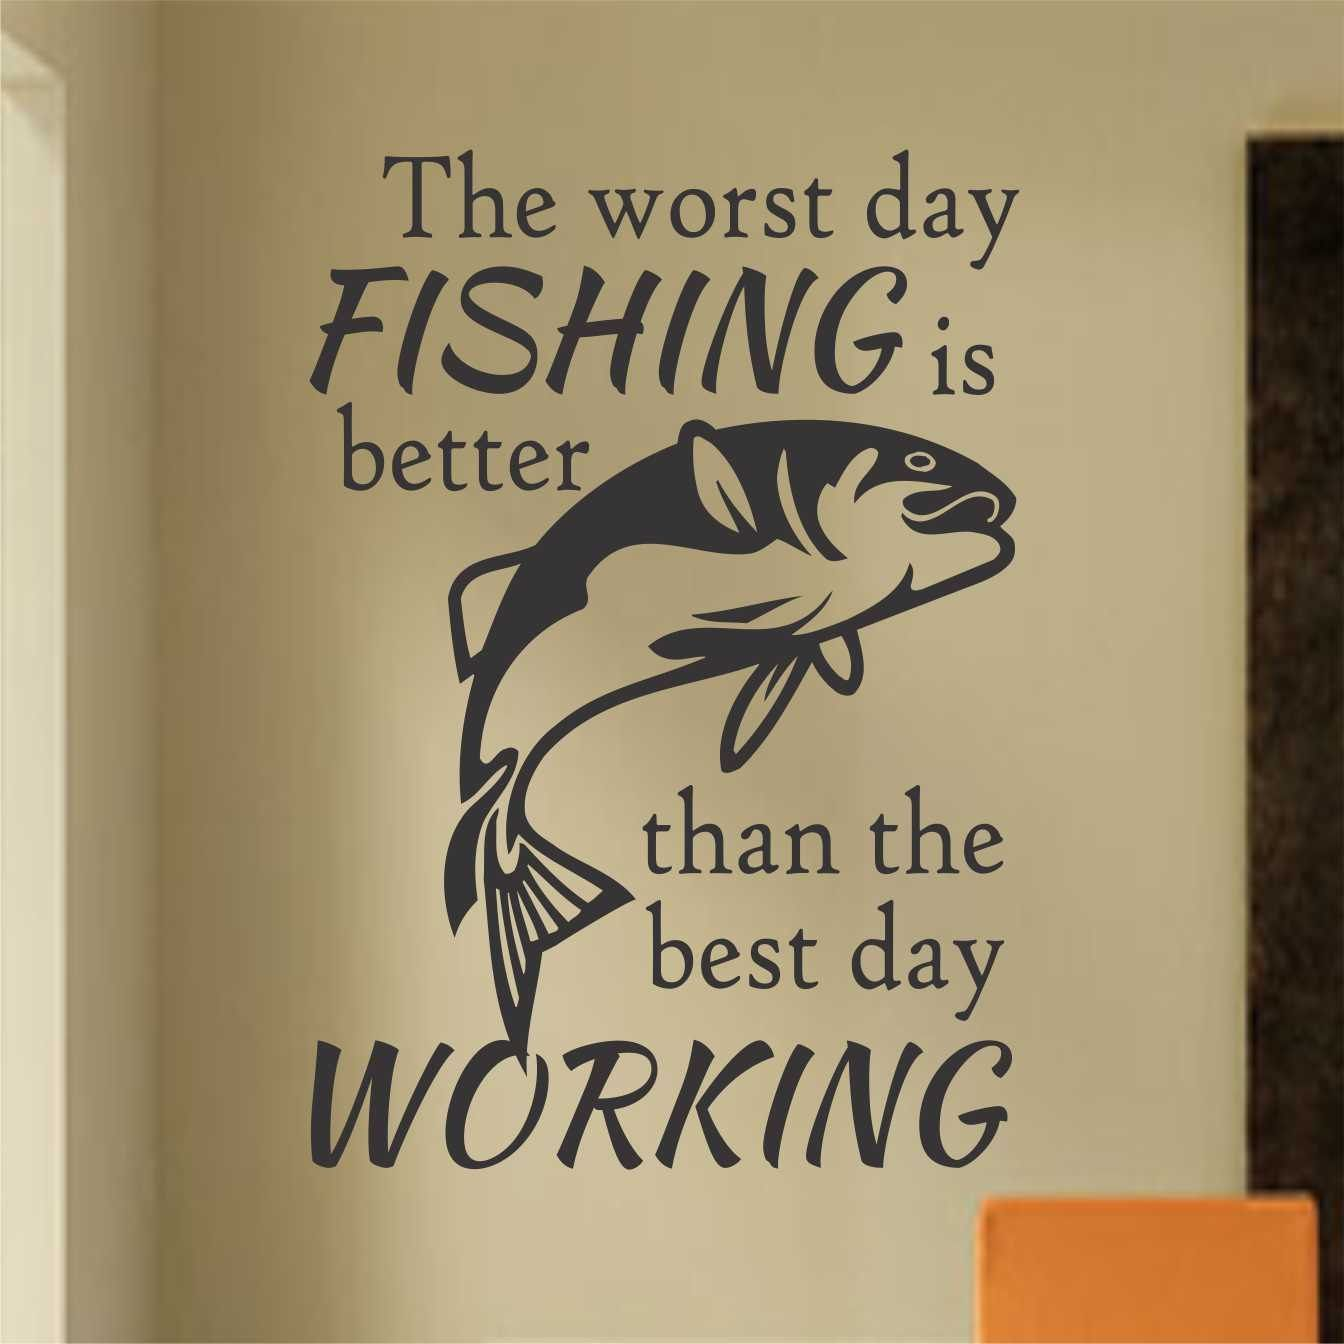 Funny Hunting Quotes Vinyl Wall Lettering Funny Worst Day Fishing Better Quote Decal